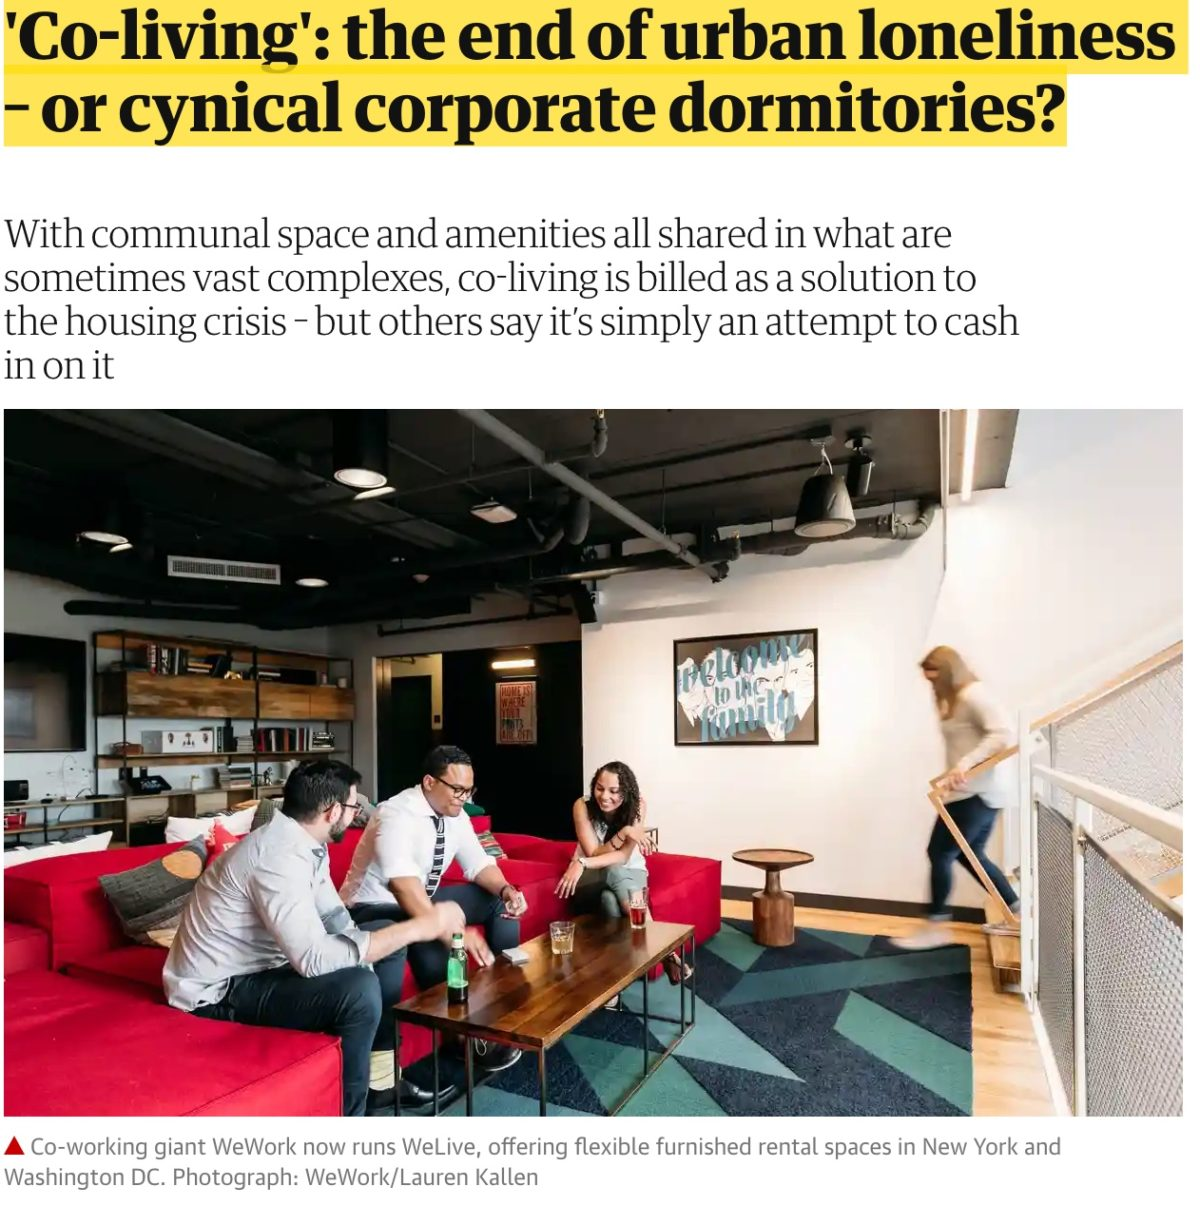 Coliving – a way to avoid loneliness or cynical corporate dormitories?